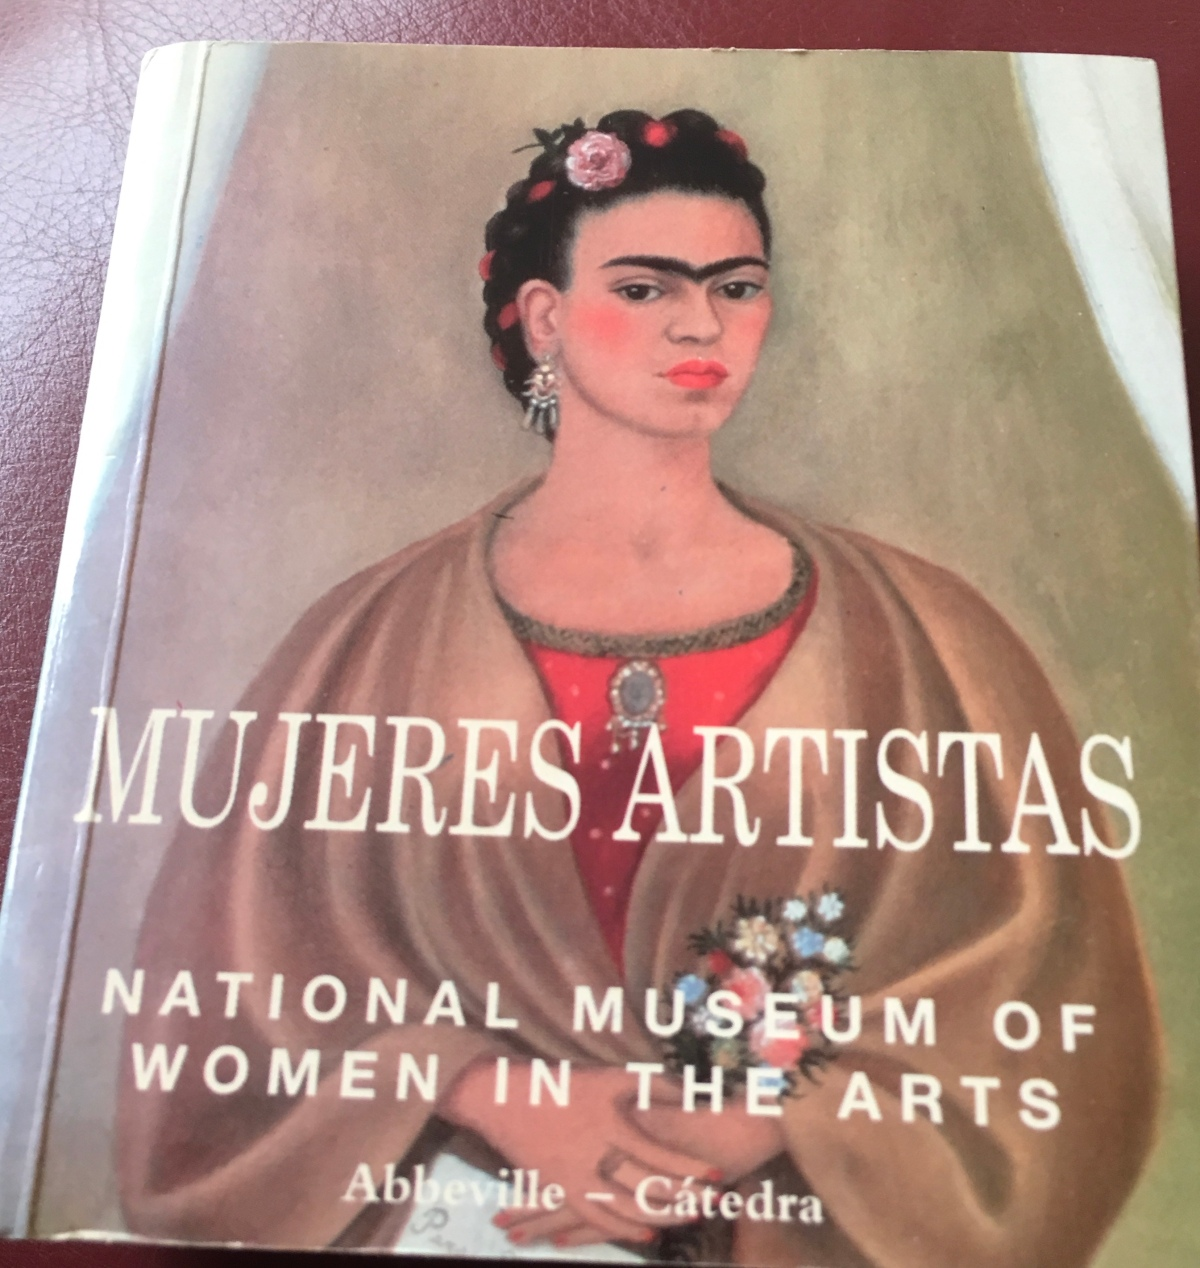 National Museum of Women in theArts